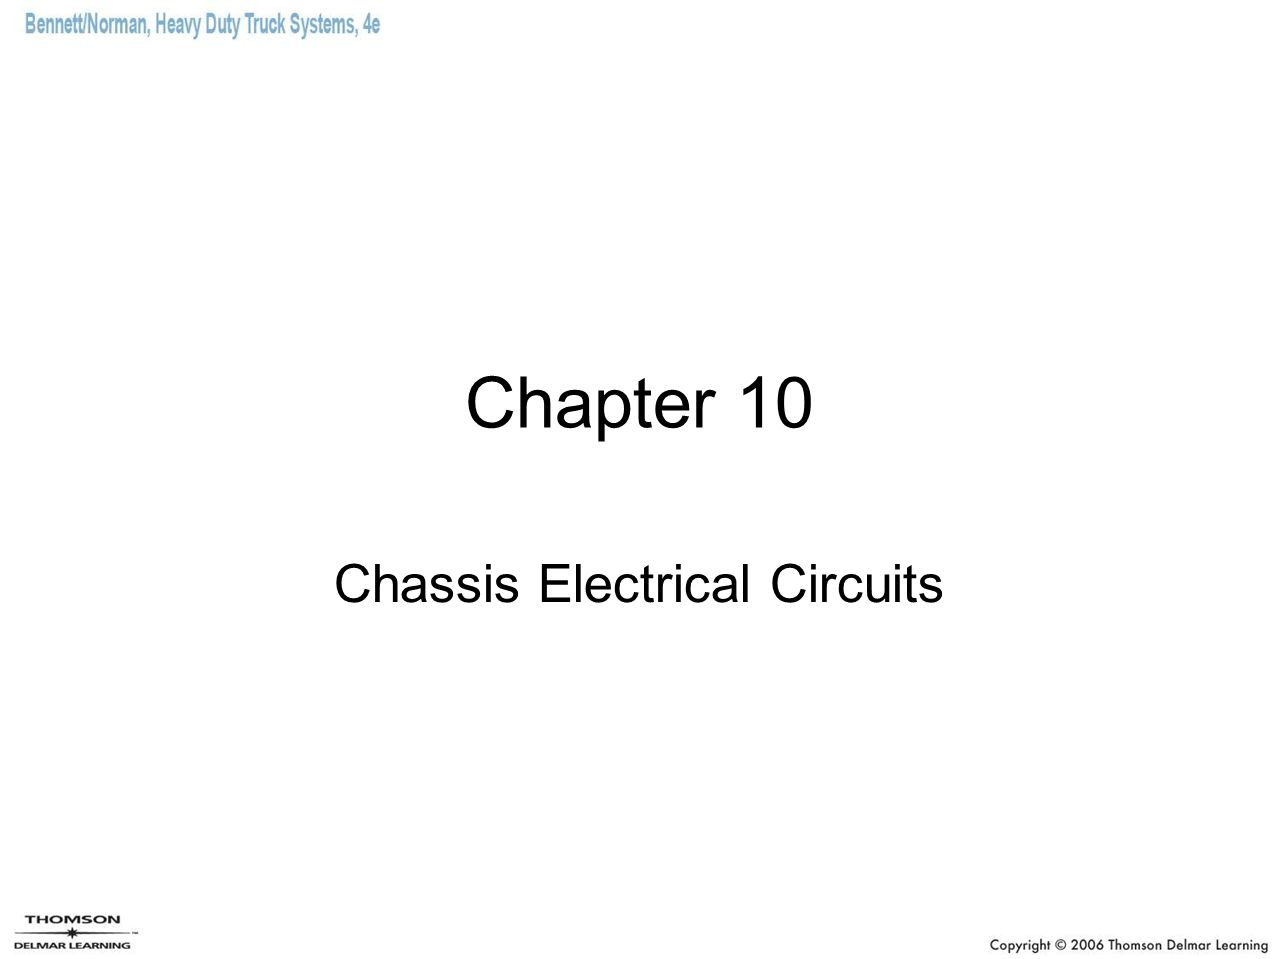 Chapter 10 Chassis Electrical Circuits